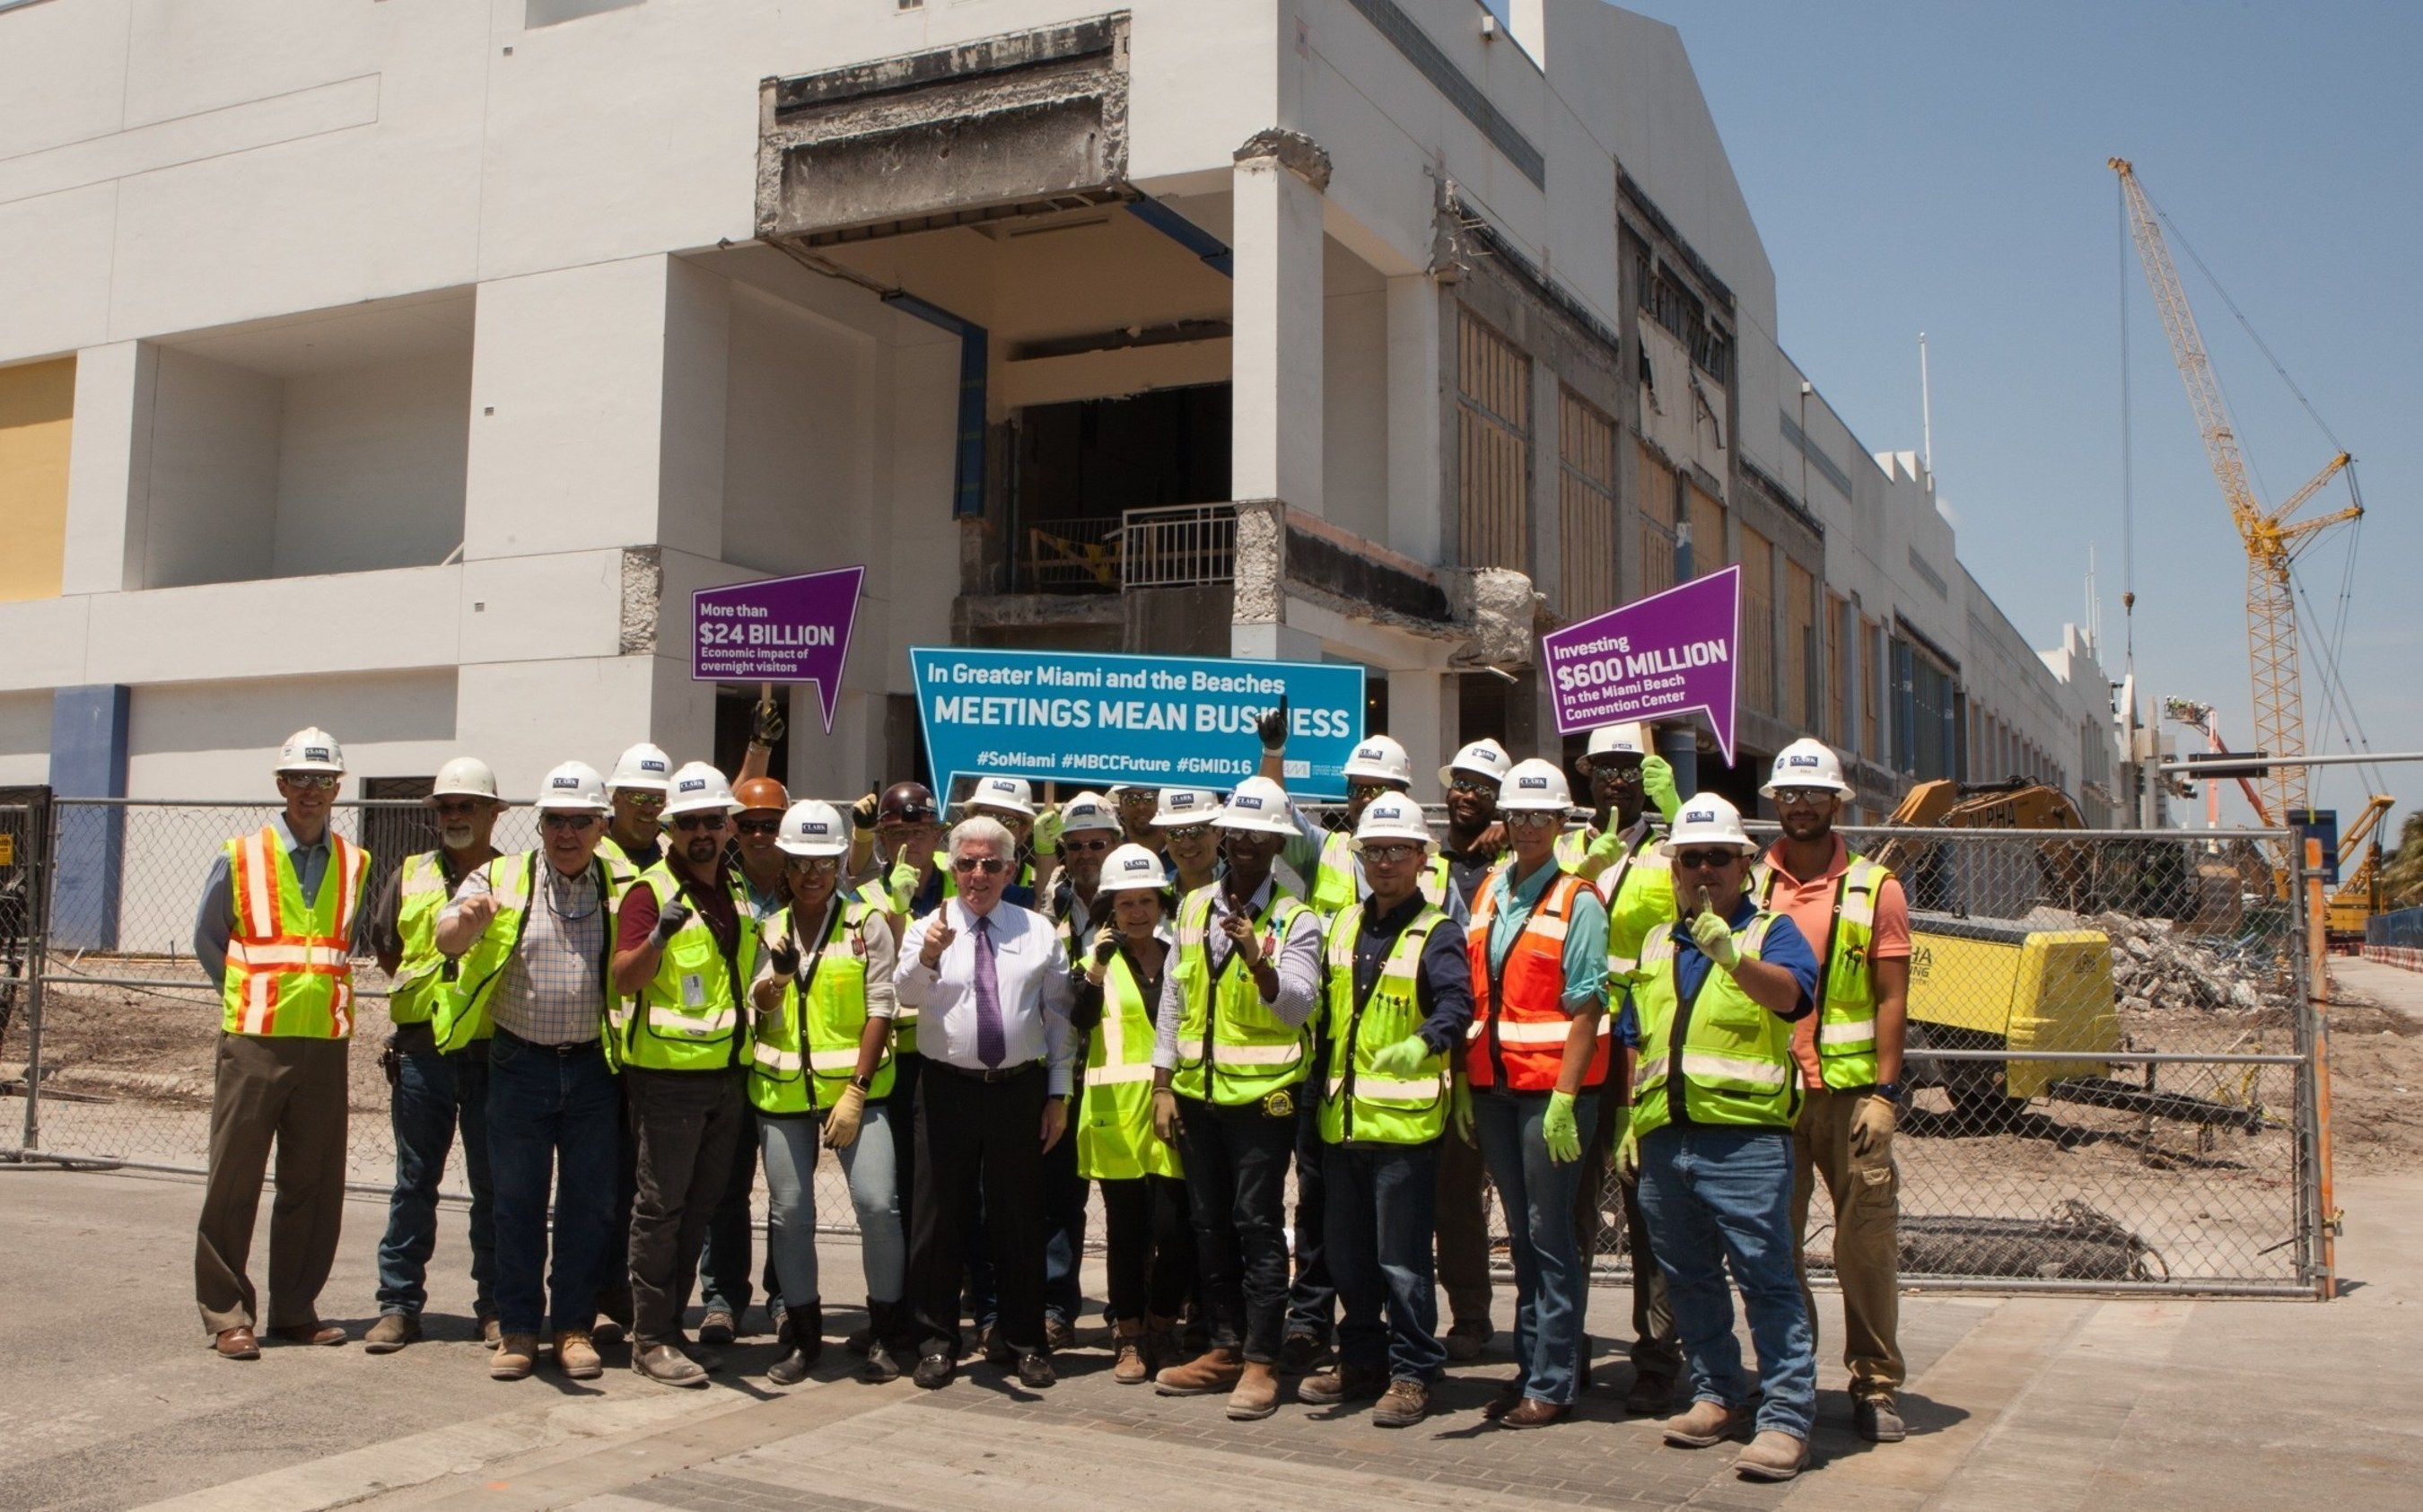 To celebrate Global Meetings Industry Day, Greater Miami Convention & Visitors Bureau (GMCVB) President and CEO William Talbert poses at the construction site of the Miami Beach Convention Center alongside the Clark Construction team working on the renovation and expansion of the existing building.